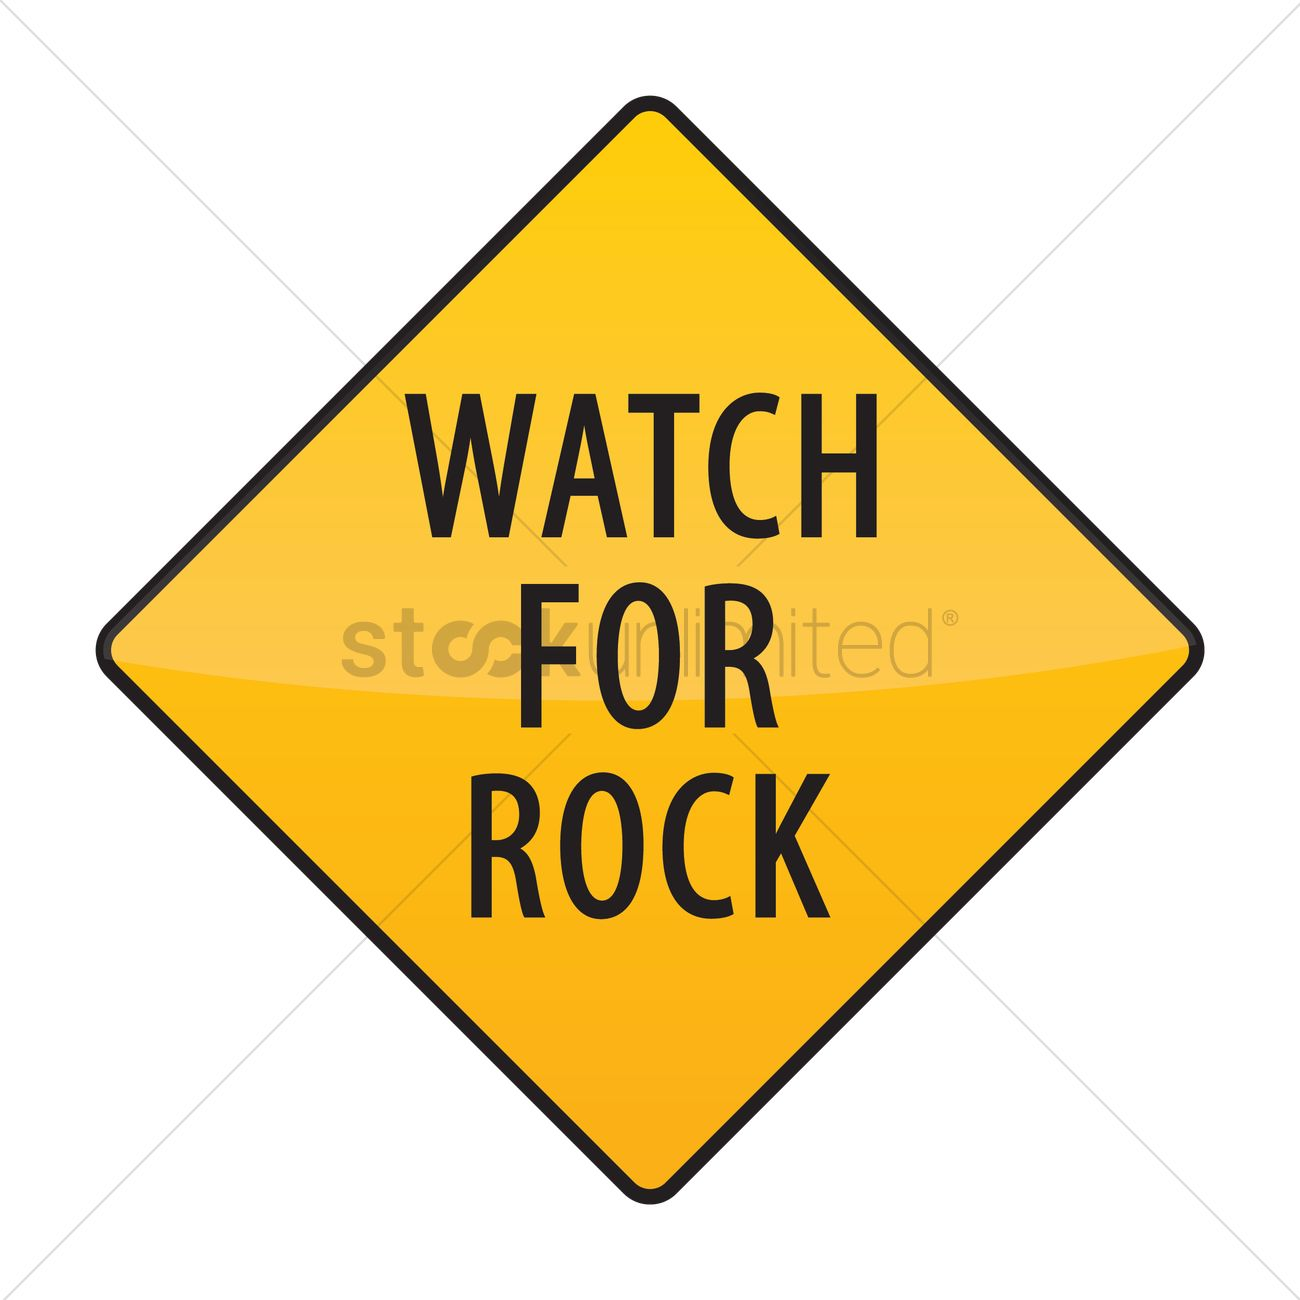 Watch for rock warning sign Vector Image - 1568956